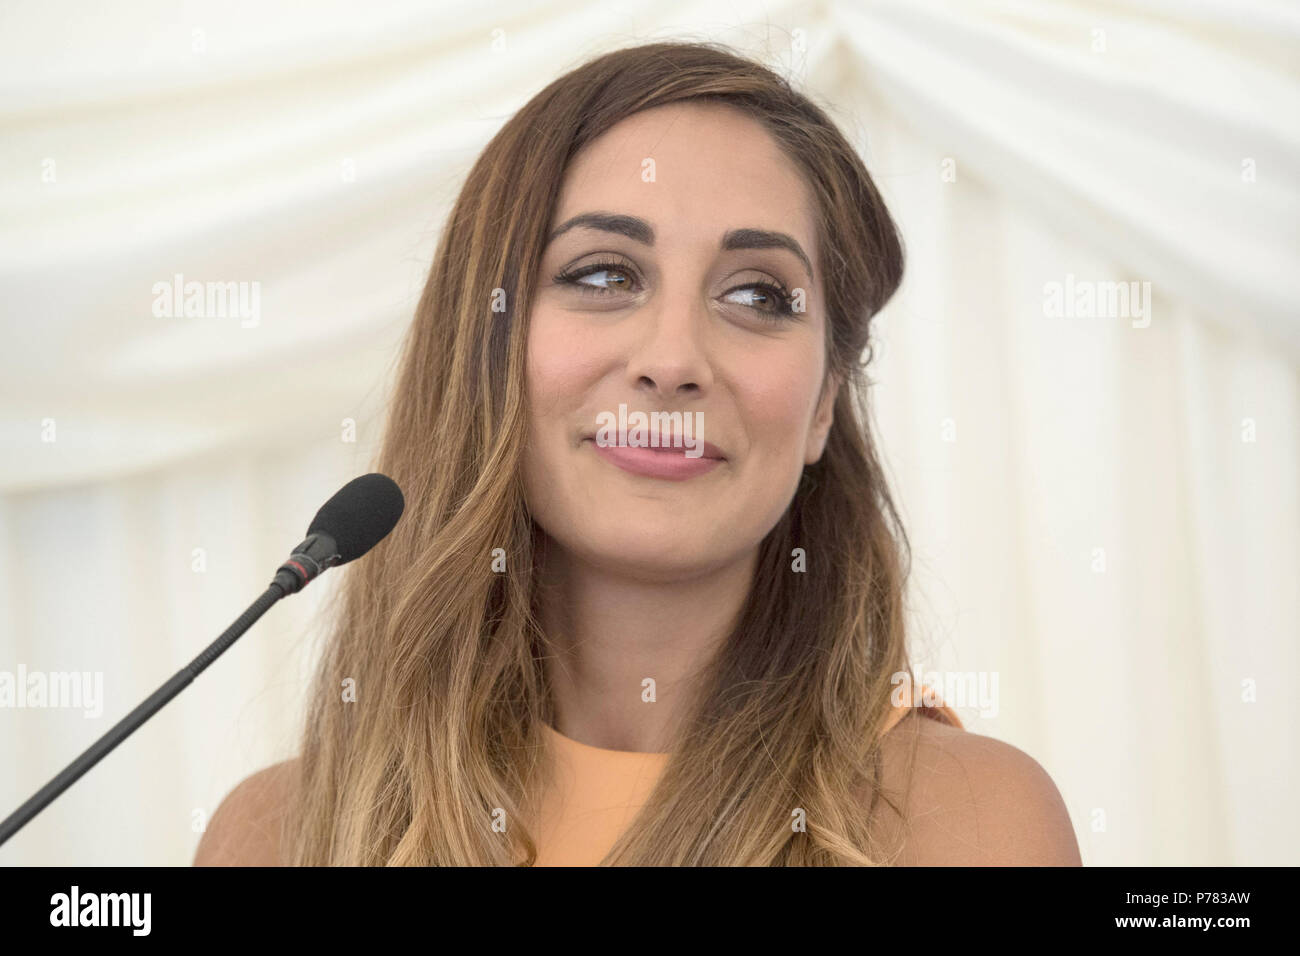 Dr Sara Kayat attends the NHS70 parliamentary awards for the 70th anniversary of the NHS at the House of Commons in Westminster, London. - Stock Image